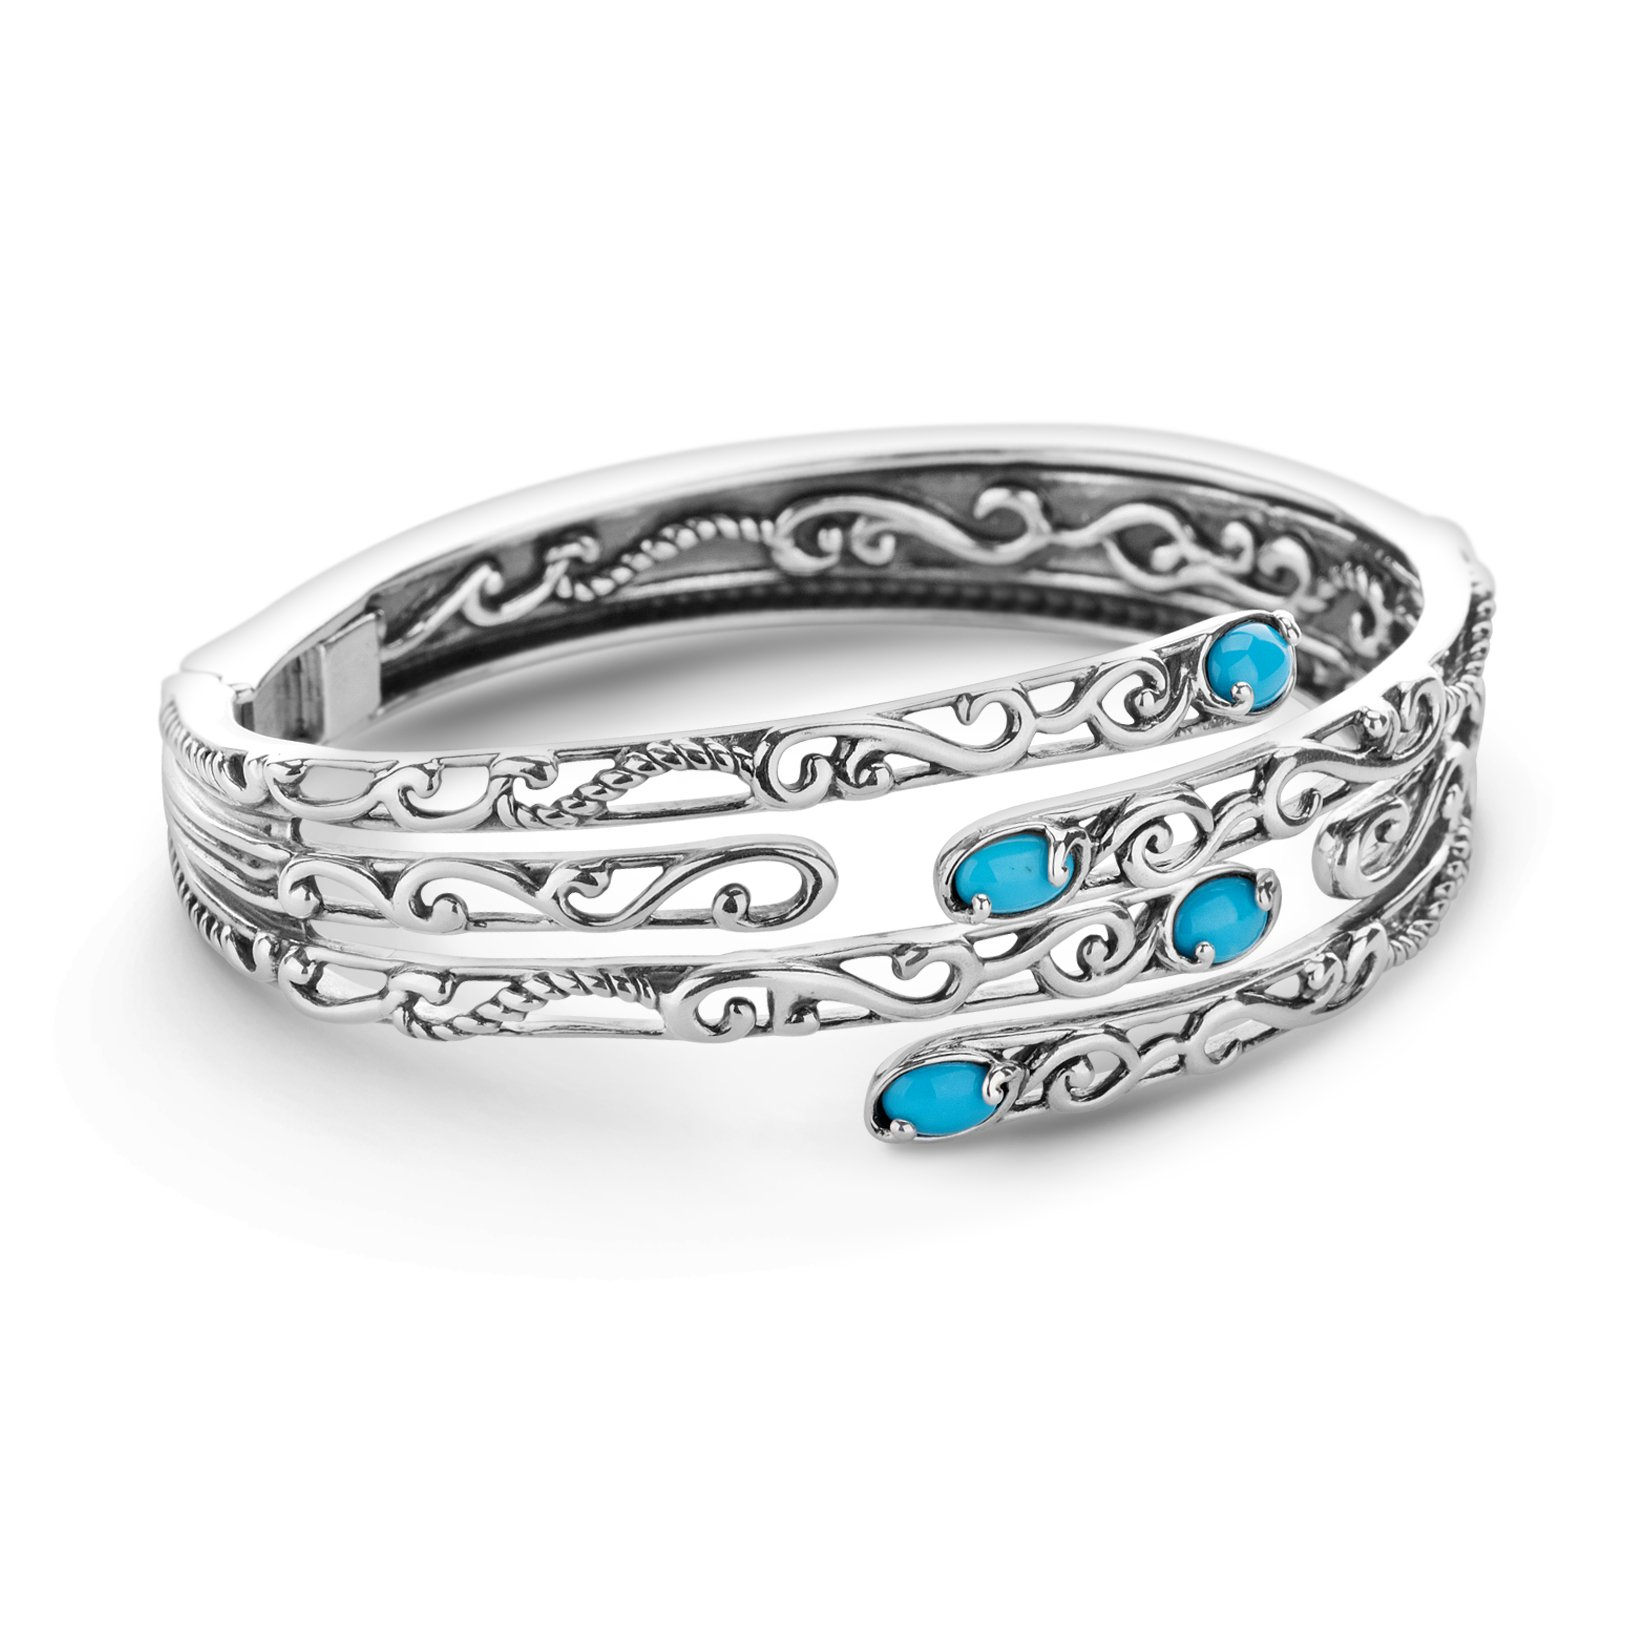 CP Signature Sleeping Beauty Turquoise Hinged Cuff Bracelet by Carolyn Pollack